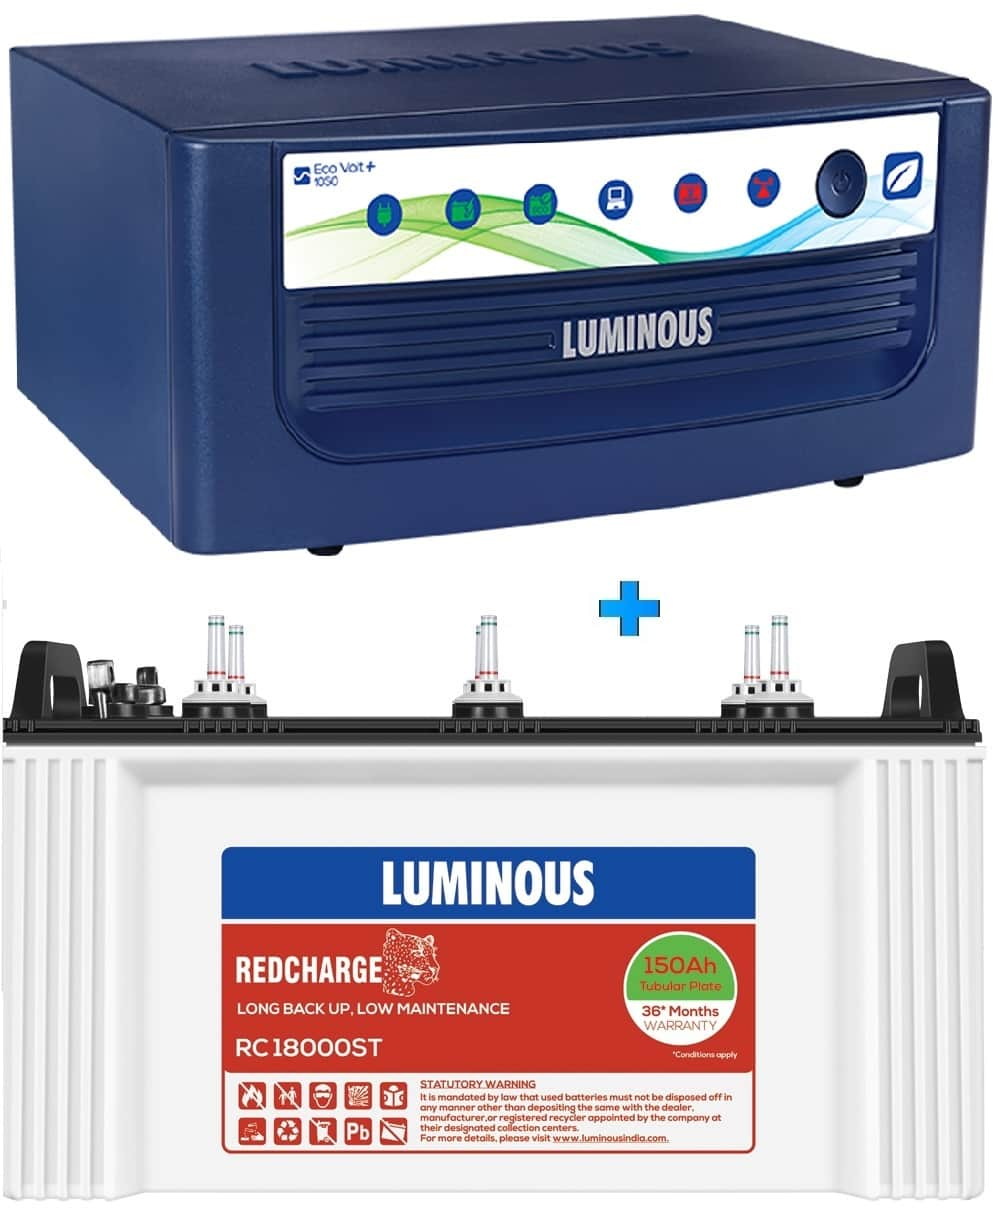 LUMINOUS ECO VOLT NEO 1050 + RC18000ST 150AH SHORT TUBULAR BATTERY